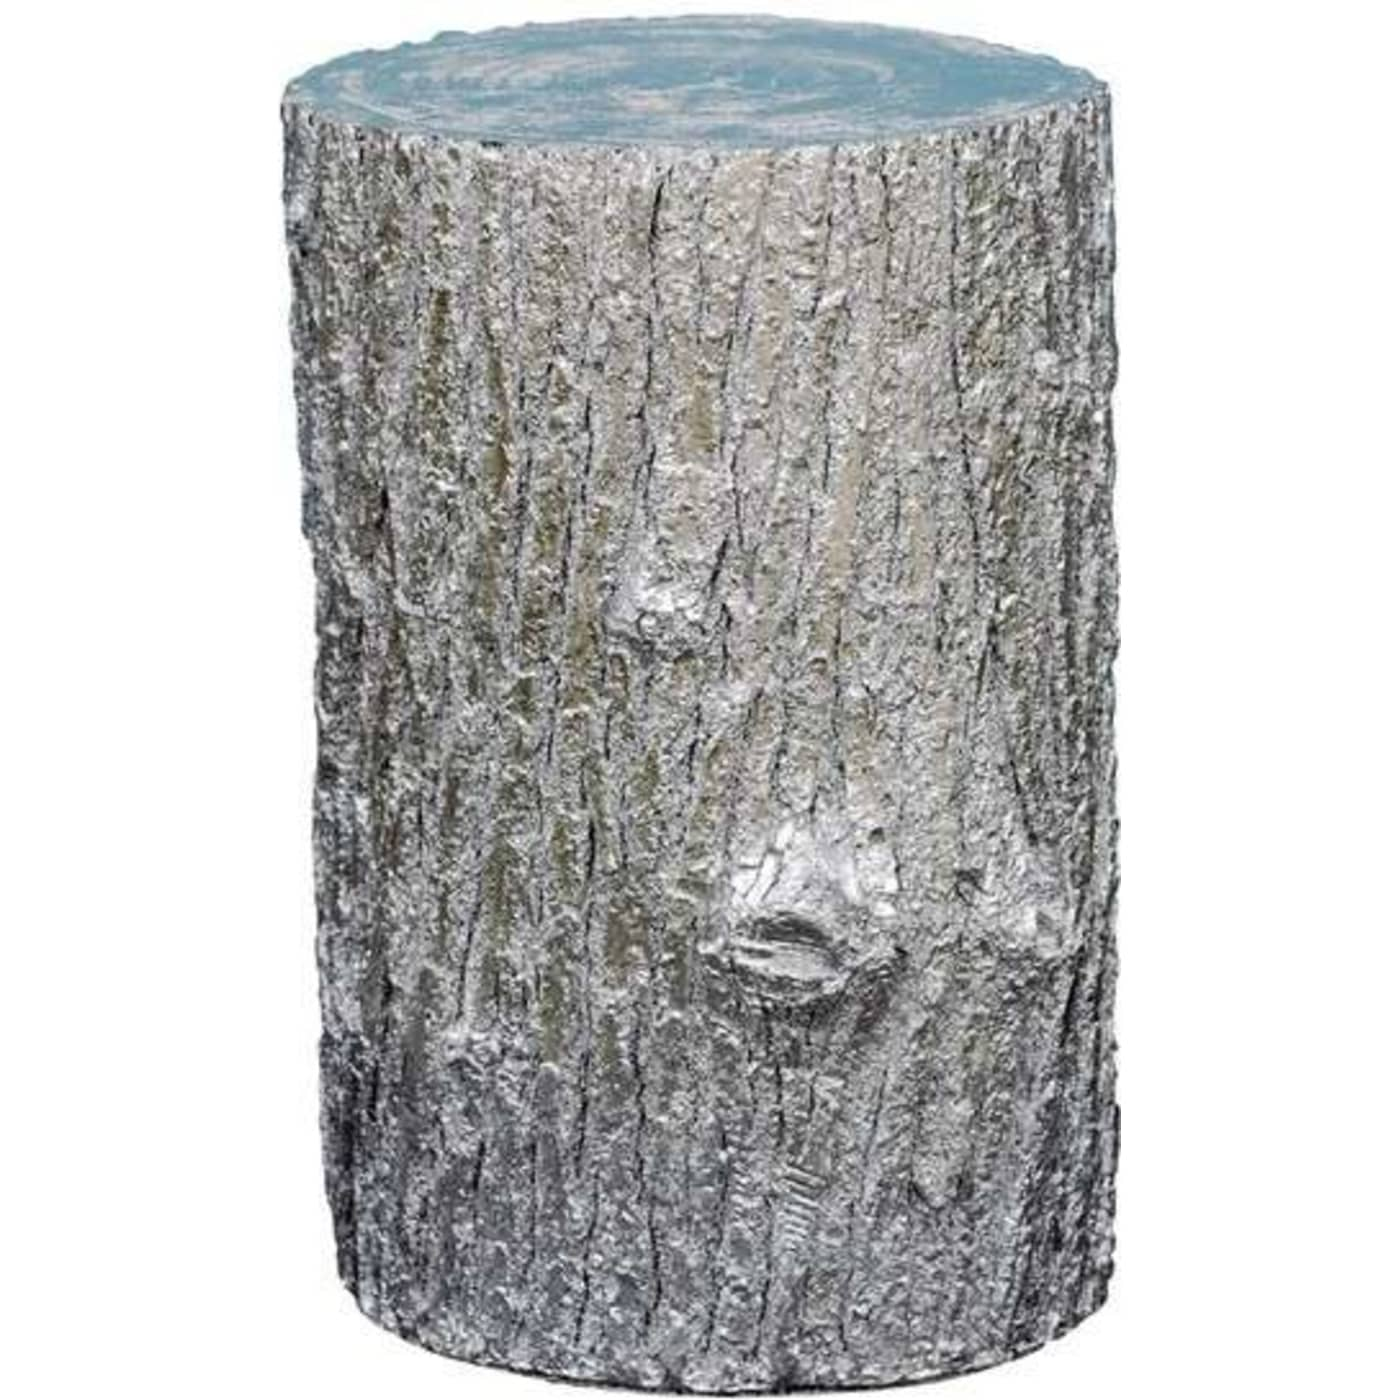 hickory manor home tree stump accent table silver hmh leaf black garden side small white patio verizon hayden furniture plum tablecloth retro kitchen chairs set nesting tables